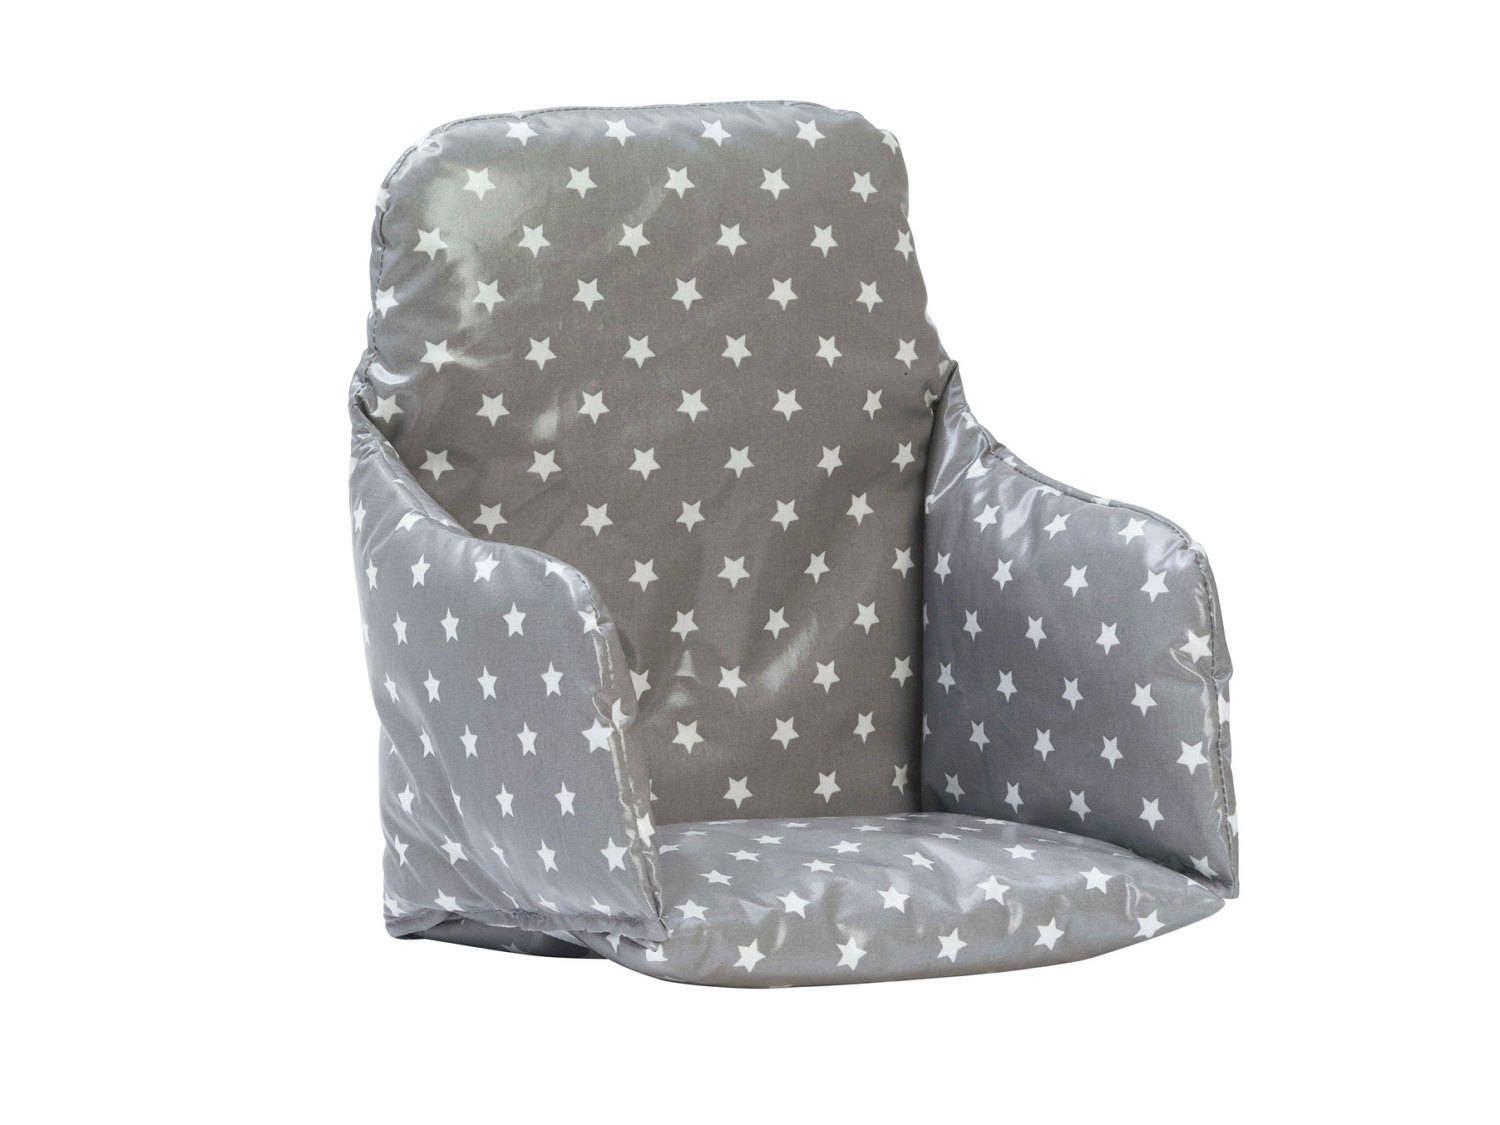 High Chair Pads High Chair Cushion Insert Super Snug Supportive And Wipe